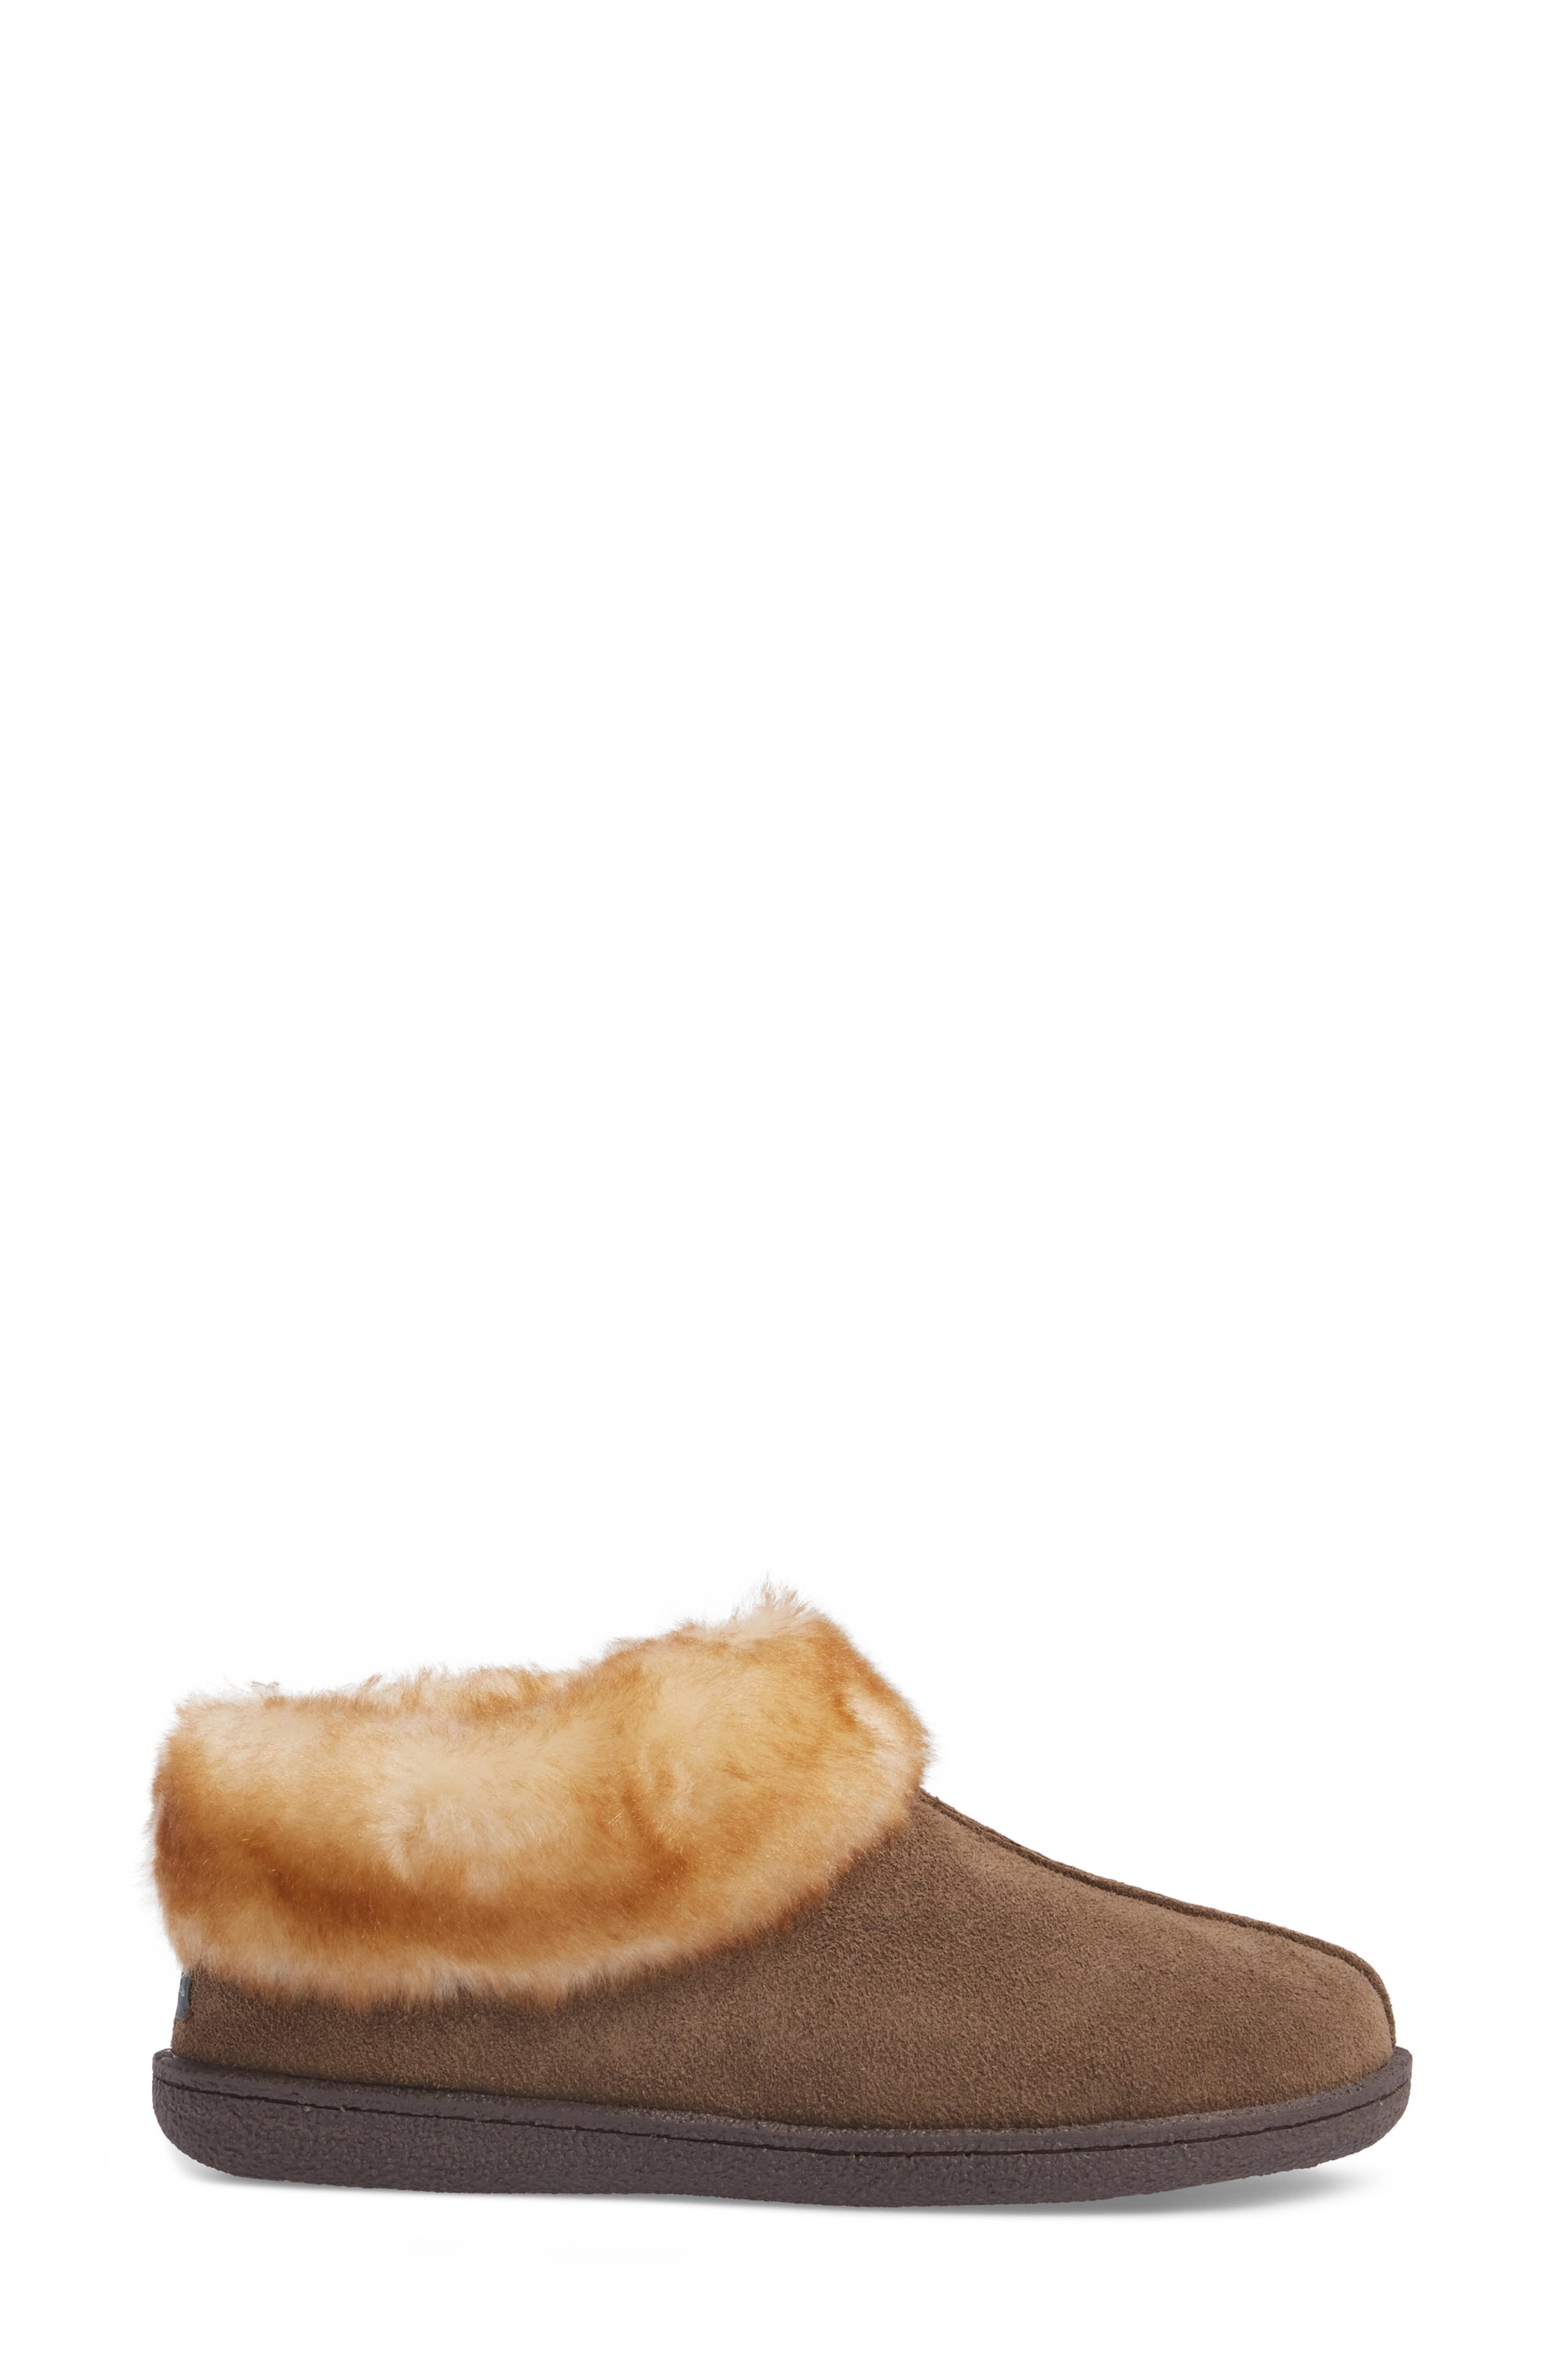 Autumn Ridge II Faux Fur Slipper Bootie,                             Alternate thumbnail 6, color,